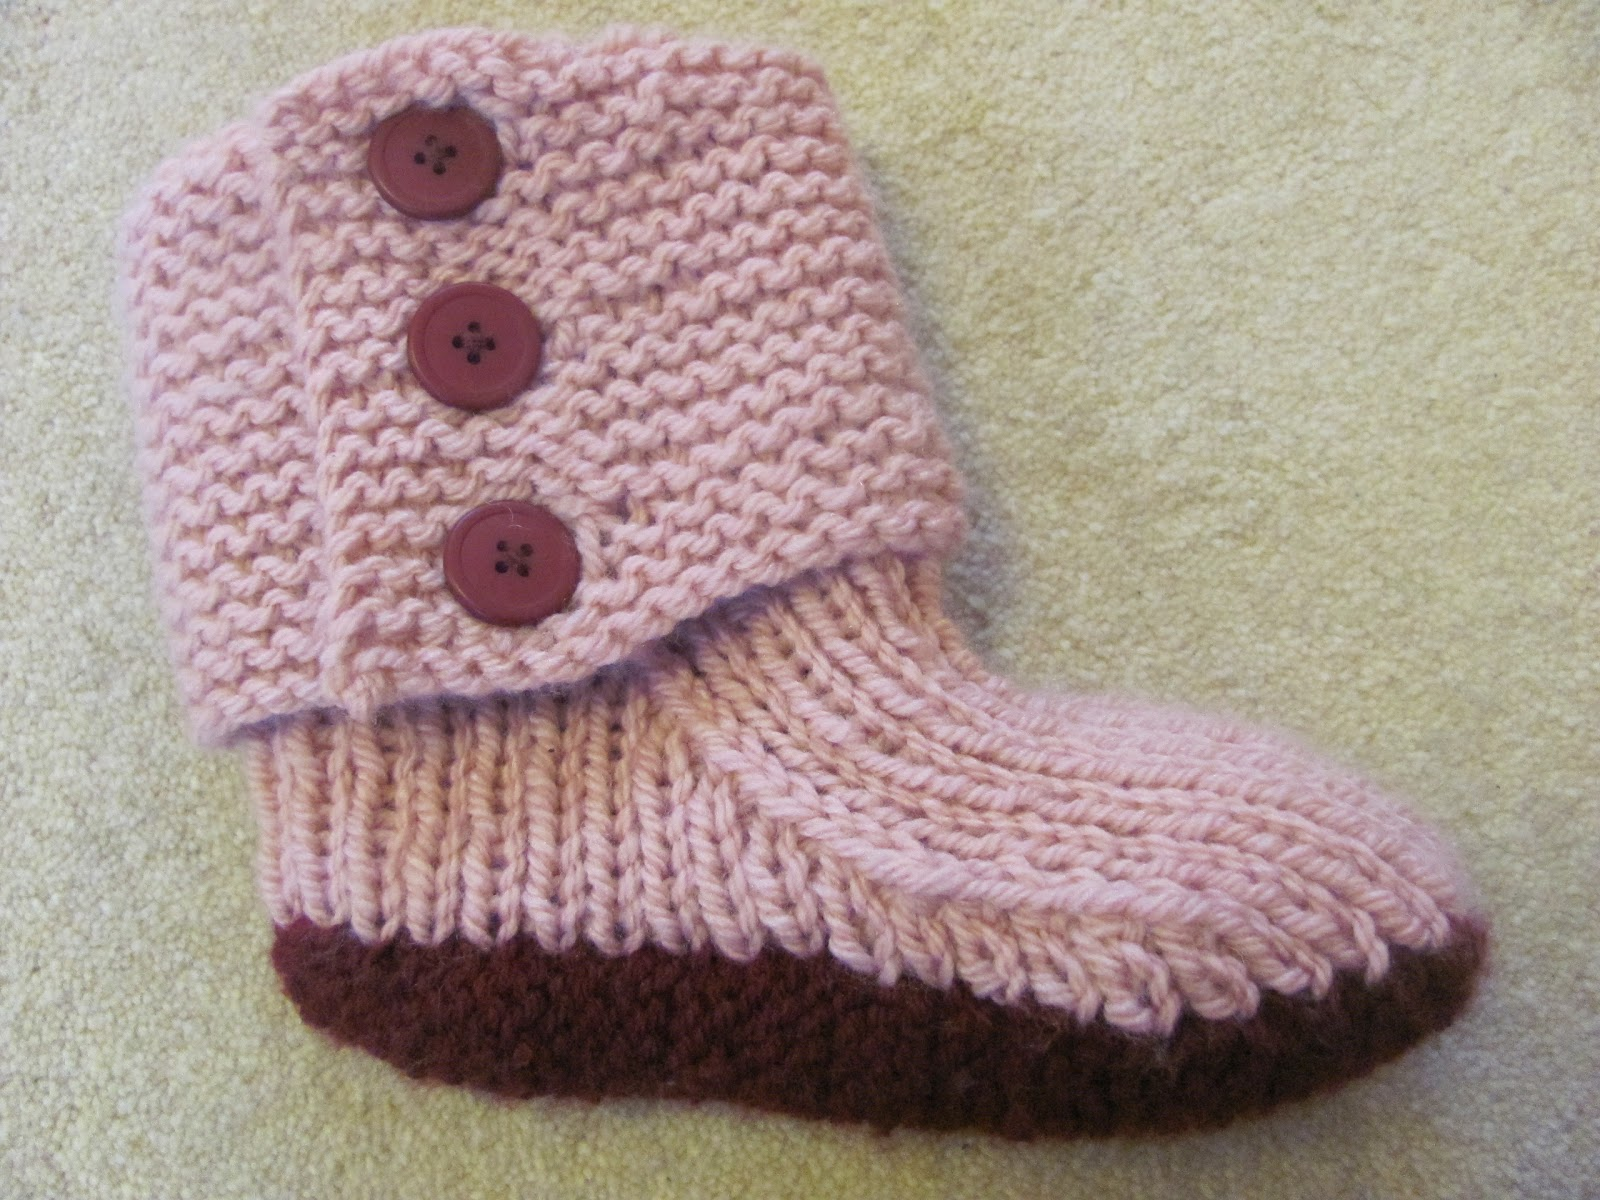 Free Knitting Pattern For Womens Slippers : The Bookworm: December 2010